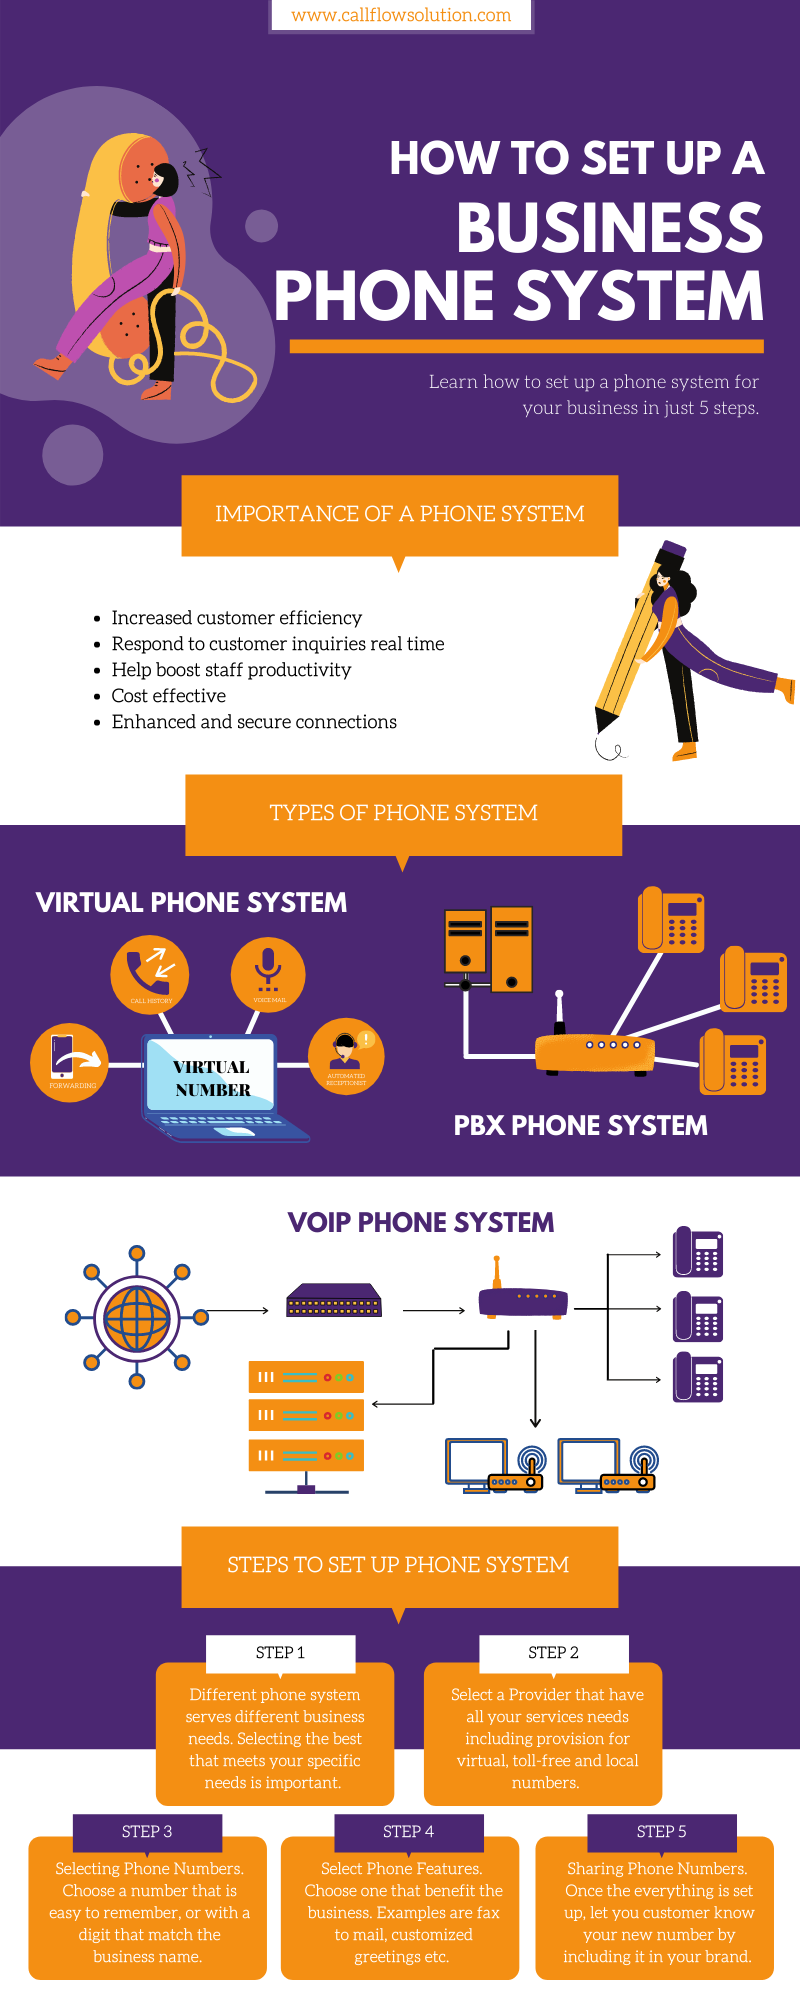 Here's a quick infographic to help understand the types of phone system out there and steps to set up one for your business.